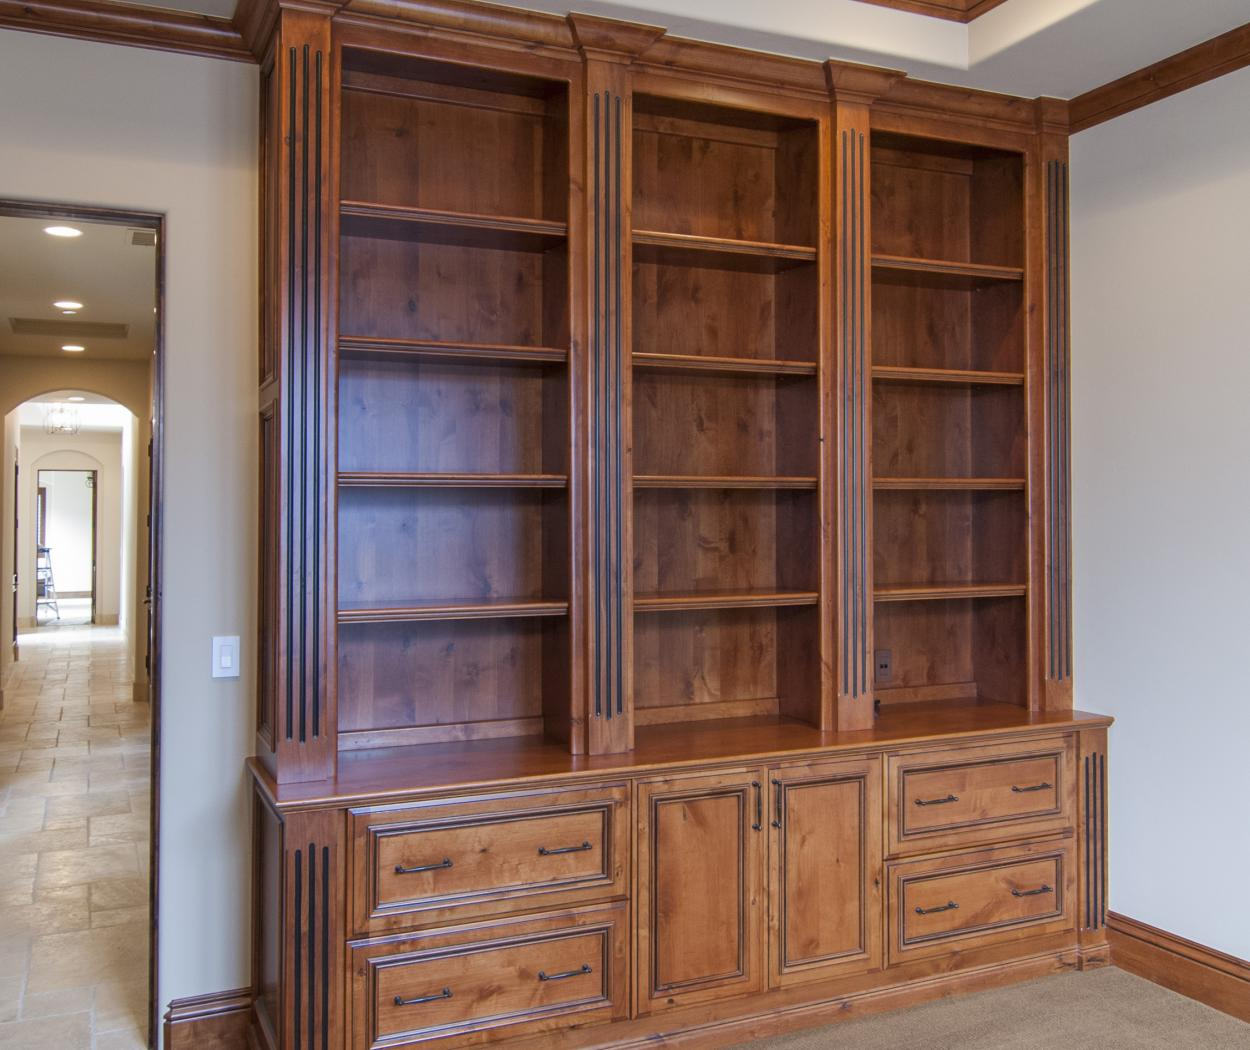 Stained Traditional Office Cabinets Built in Knotty Alder with Open Shelves and Oil Rubbed Bronze Hardware